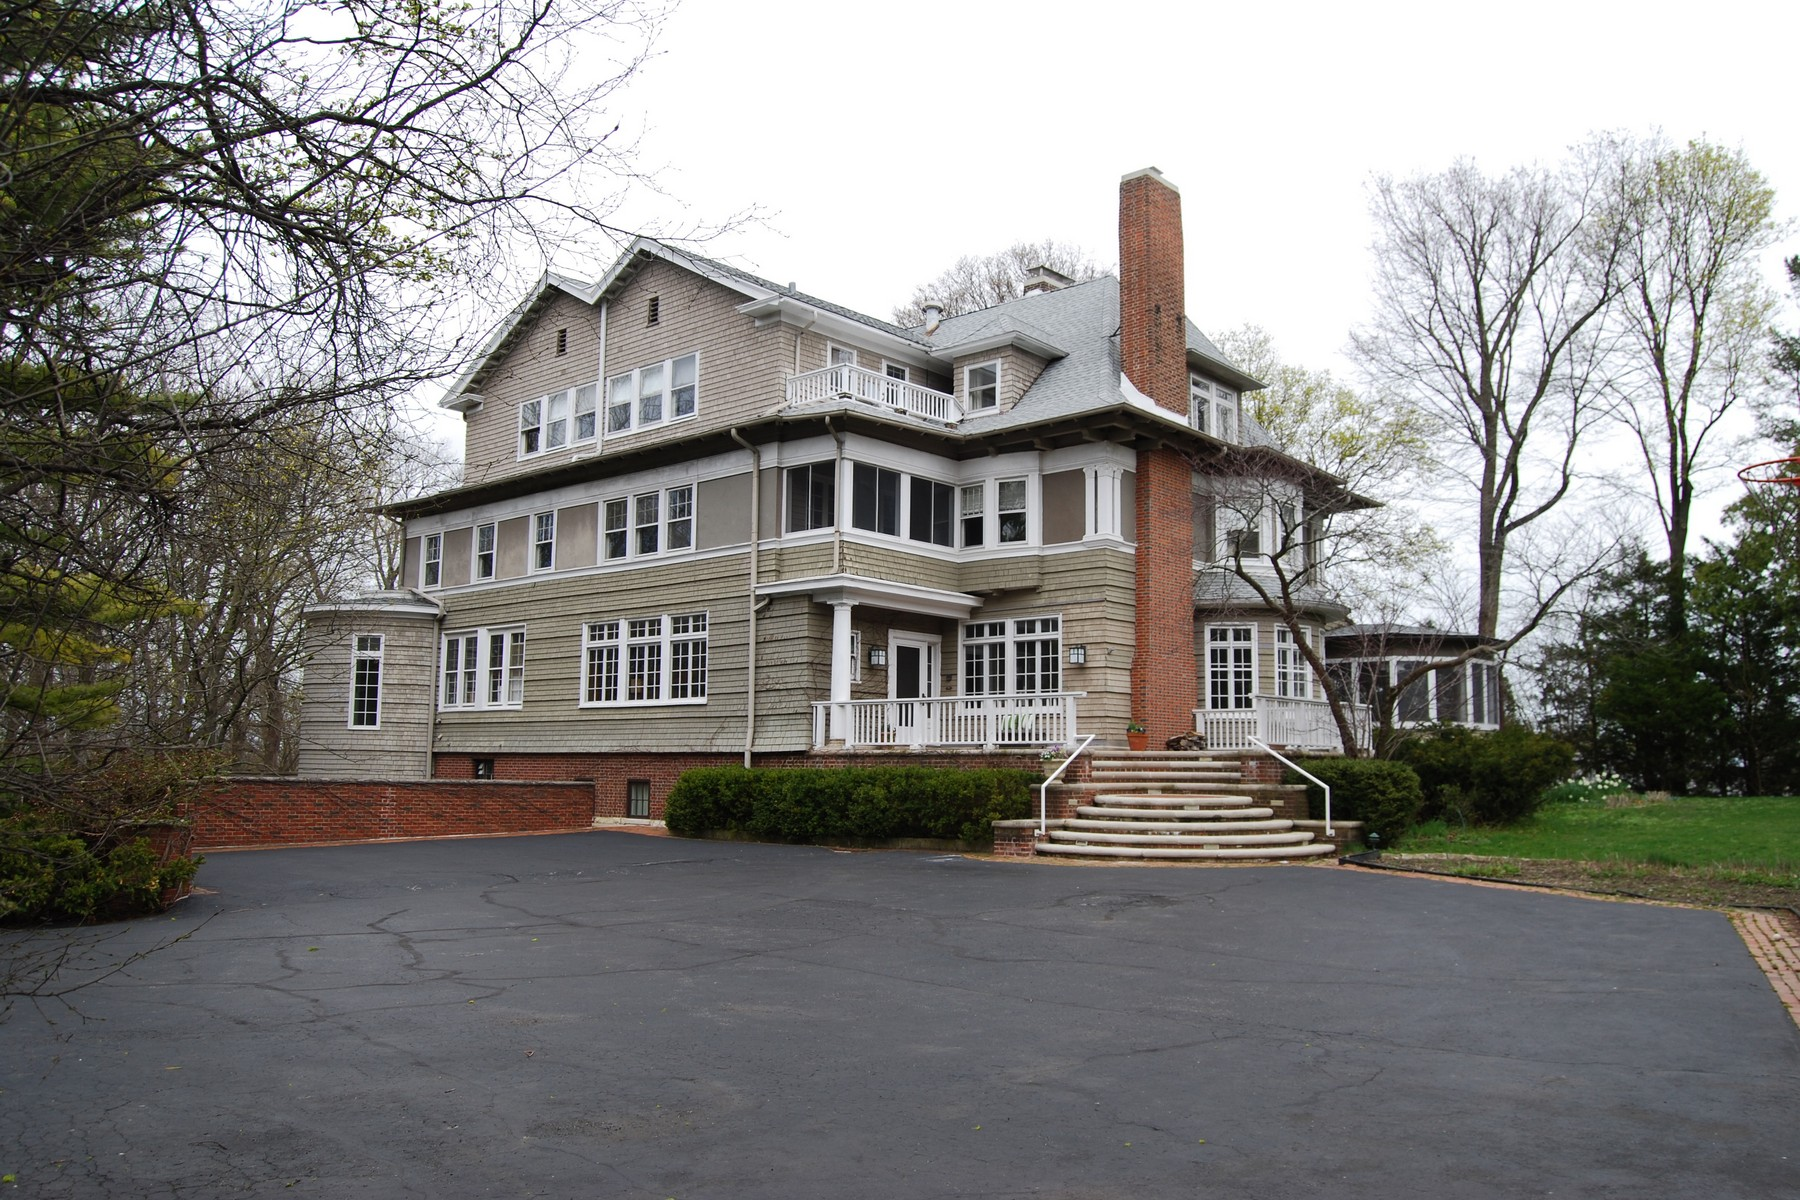 Single Family Home for Sale at Breathtaking Views and Architecture 720 Humboldt Avenue Winnetka, Illinois, 60093 United States